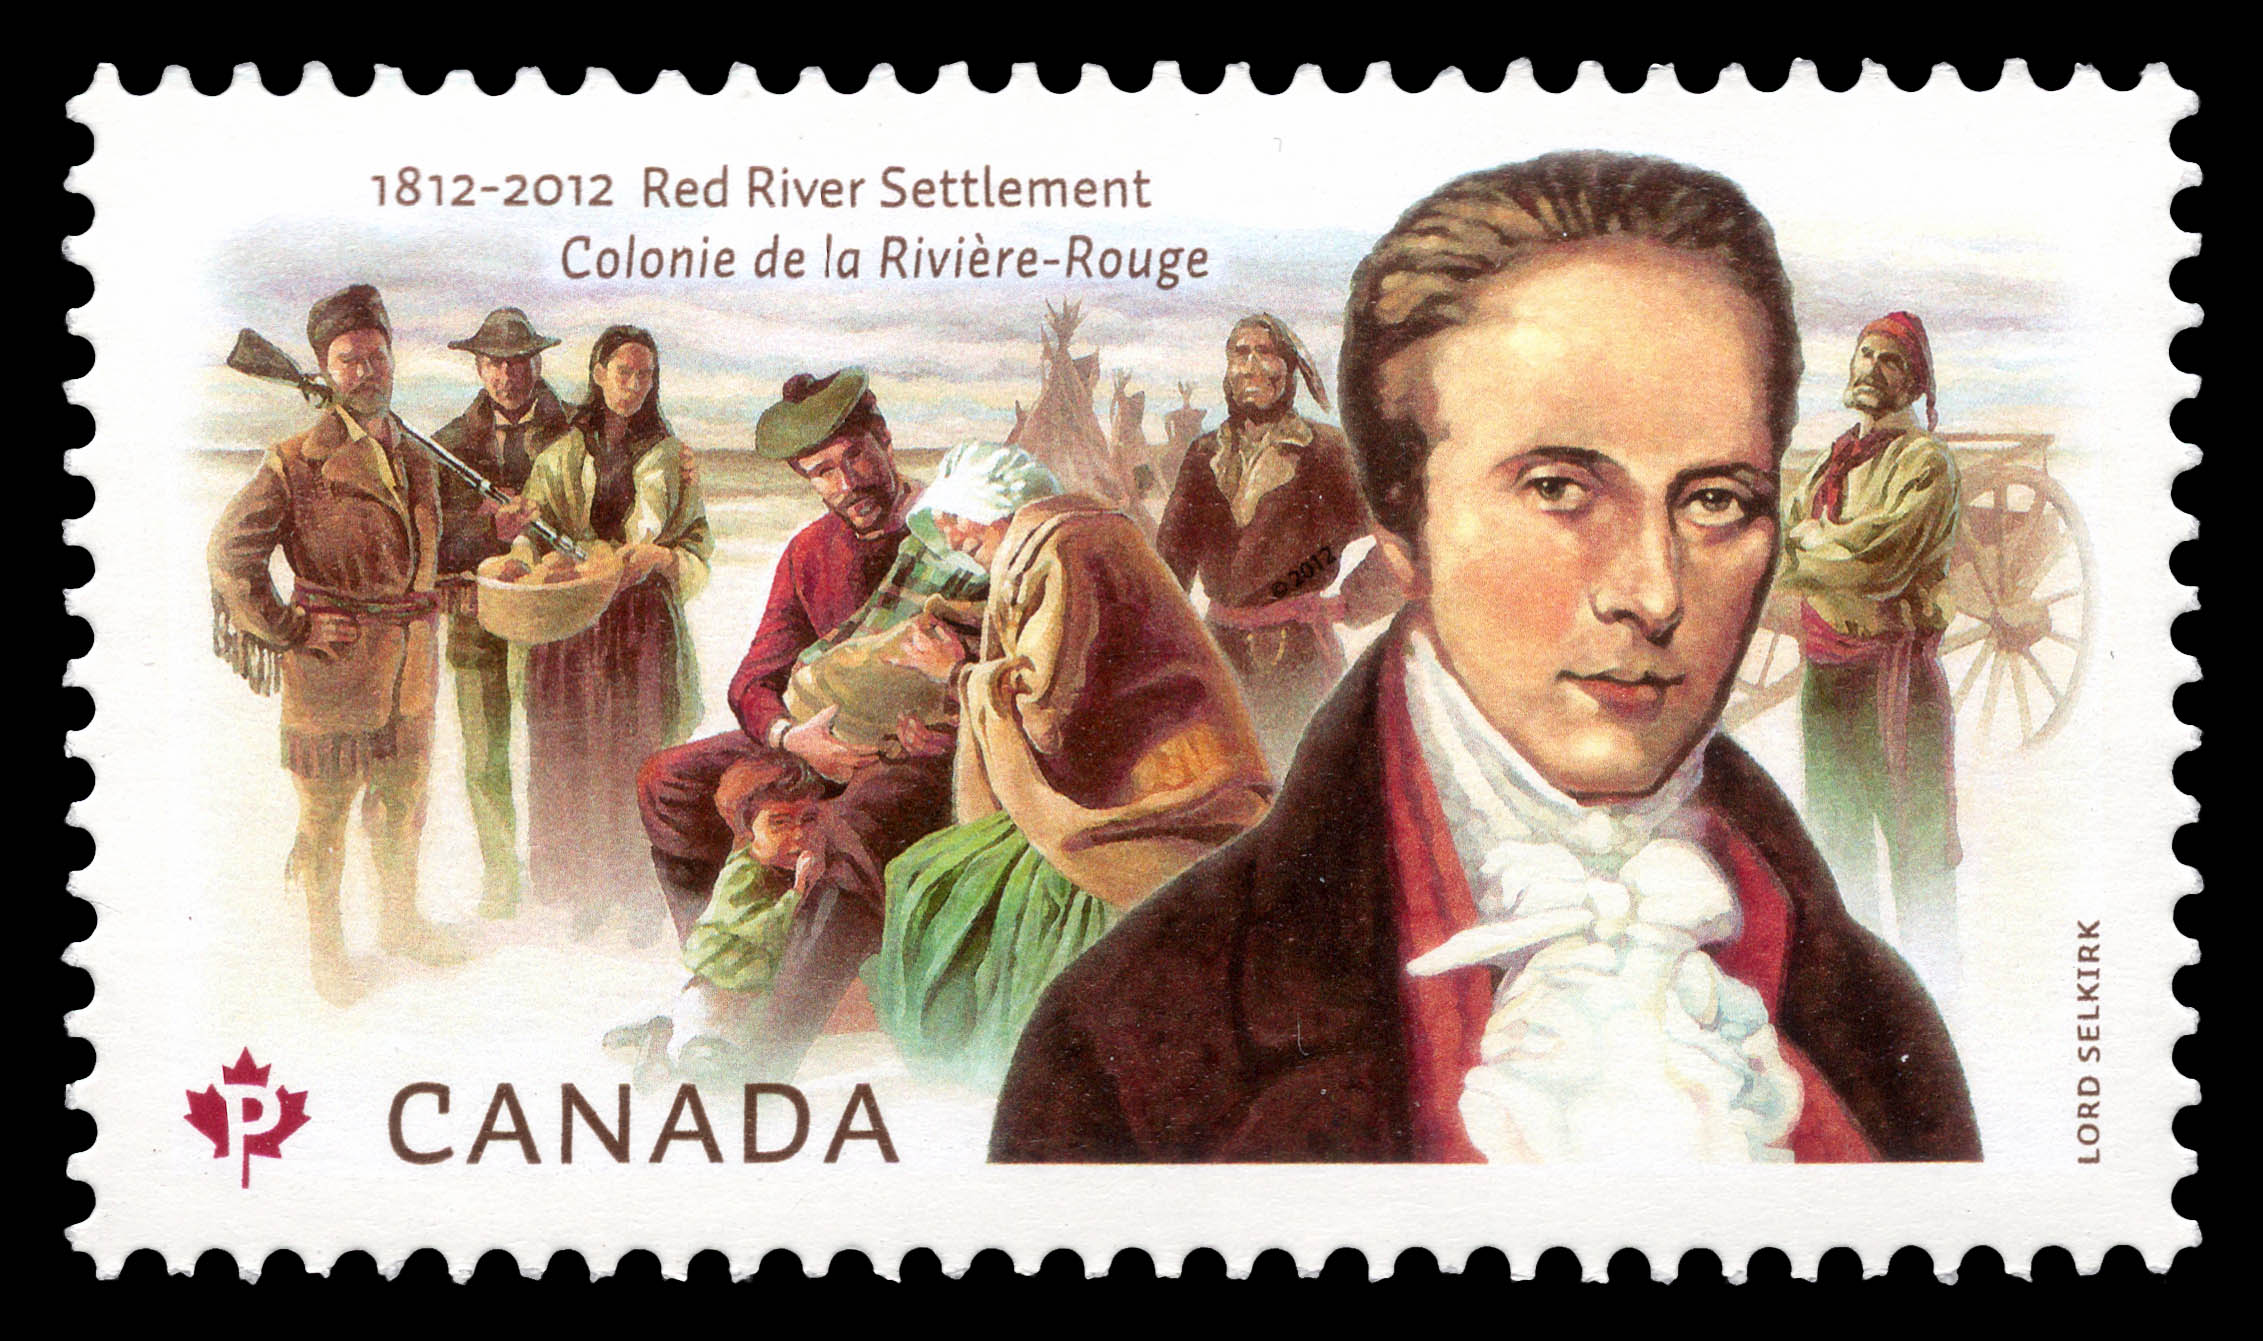 Red River Settlement Canada Postage Stamp